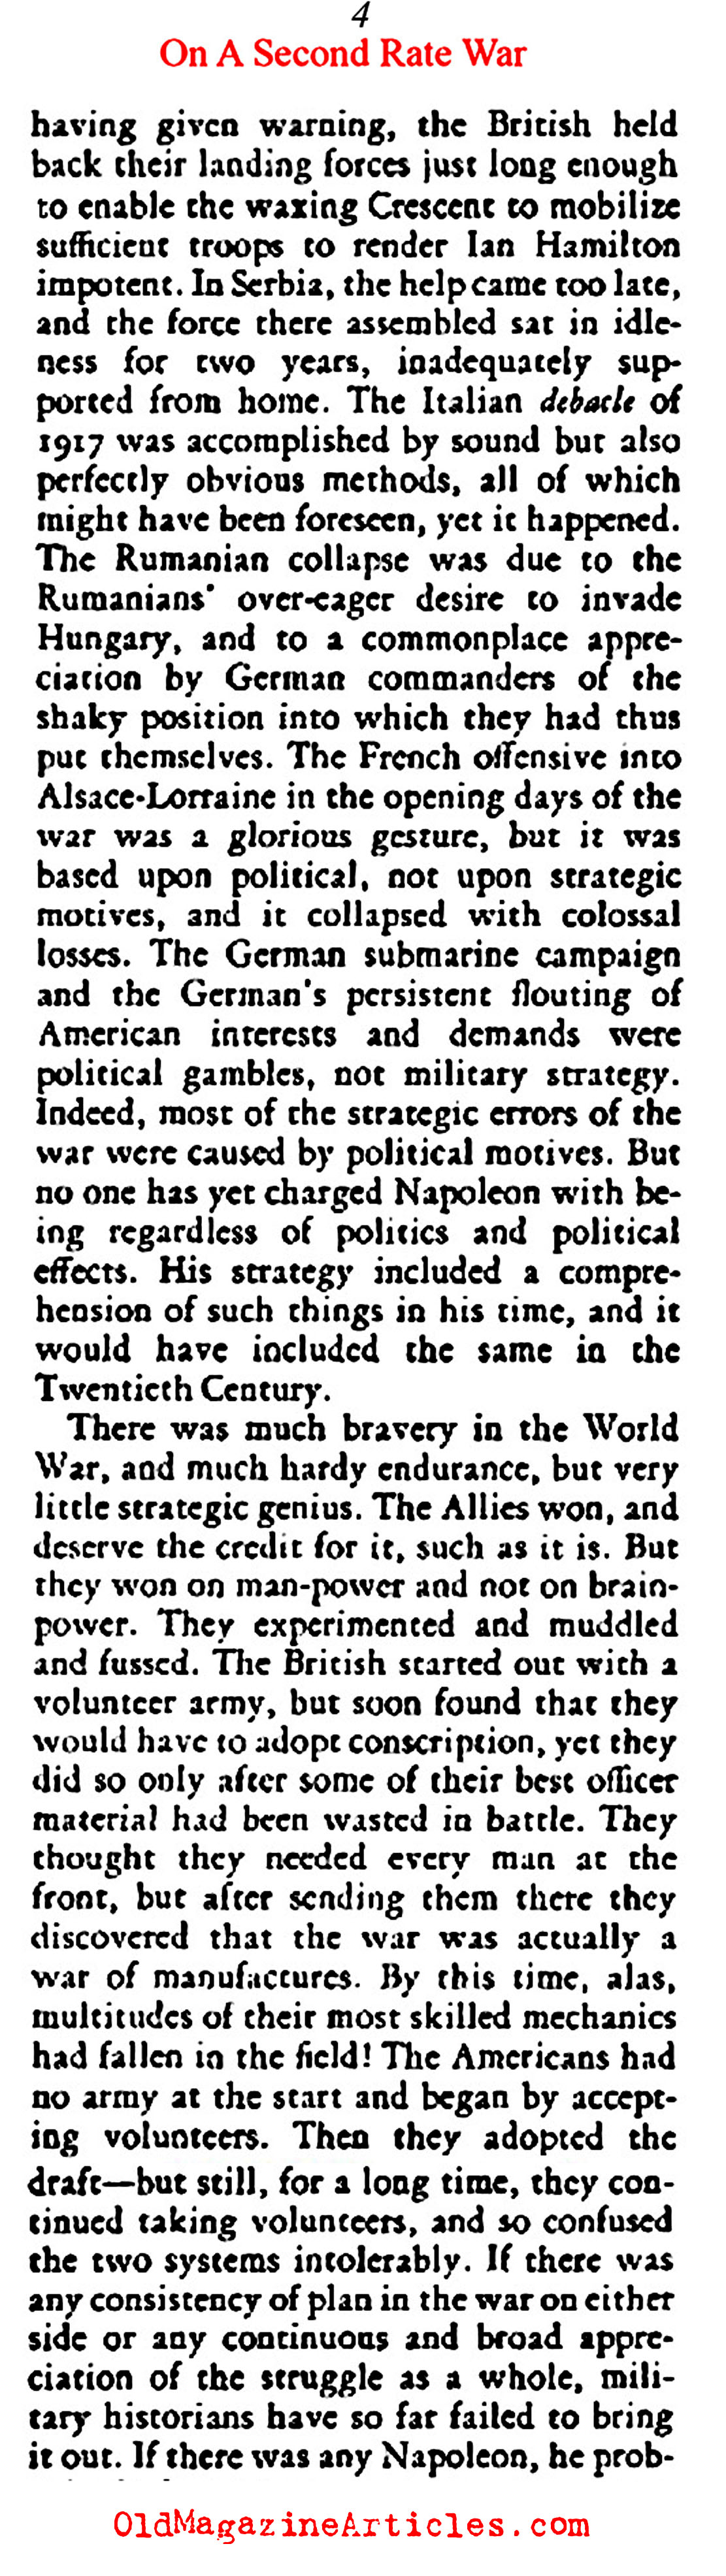 It was a Second Rate War (The American Mercury, 1924)